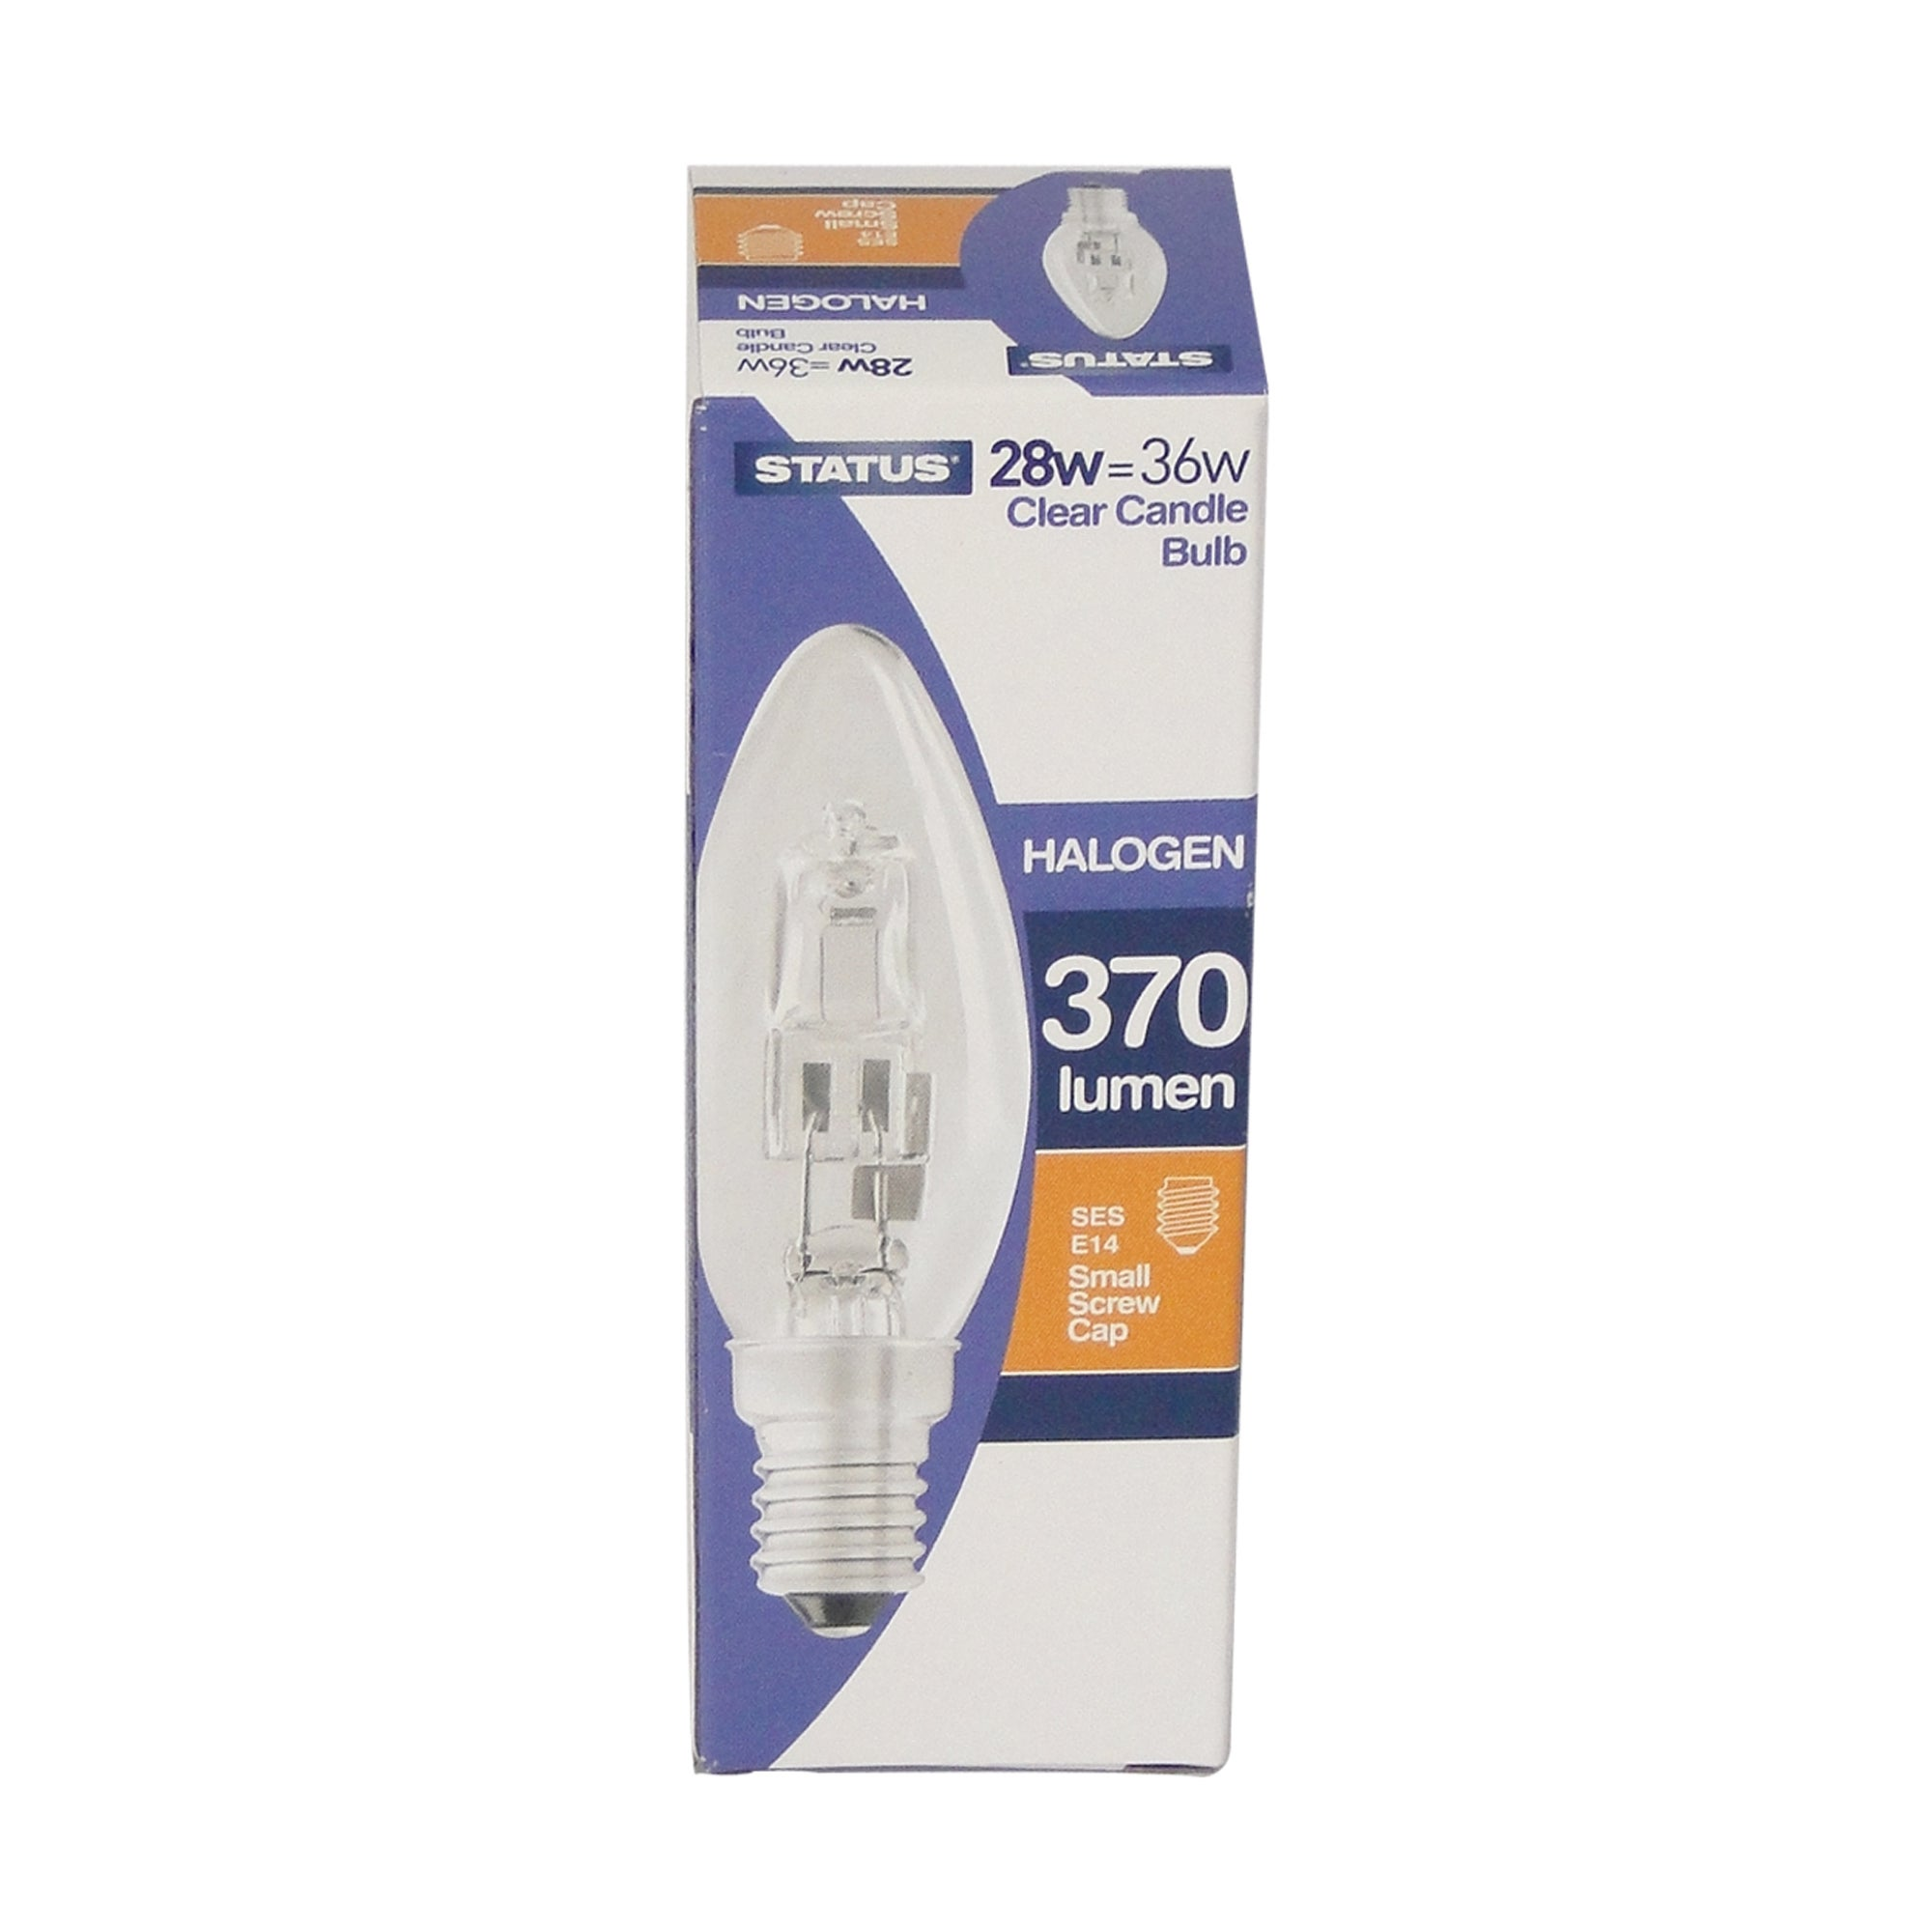 Status Halogen Eco 28 Watt Candle Bulb